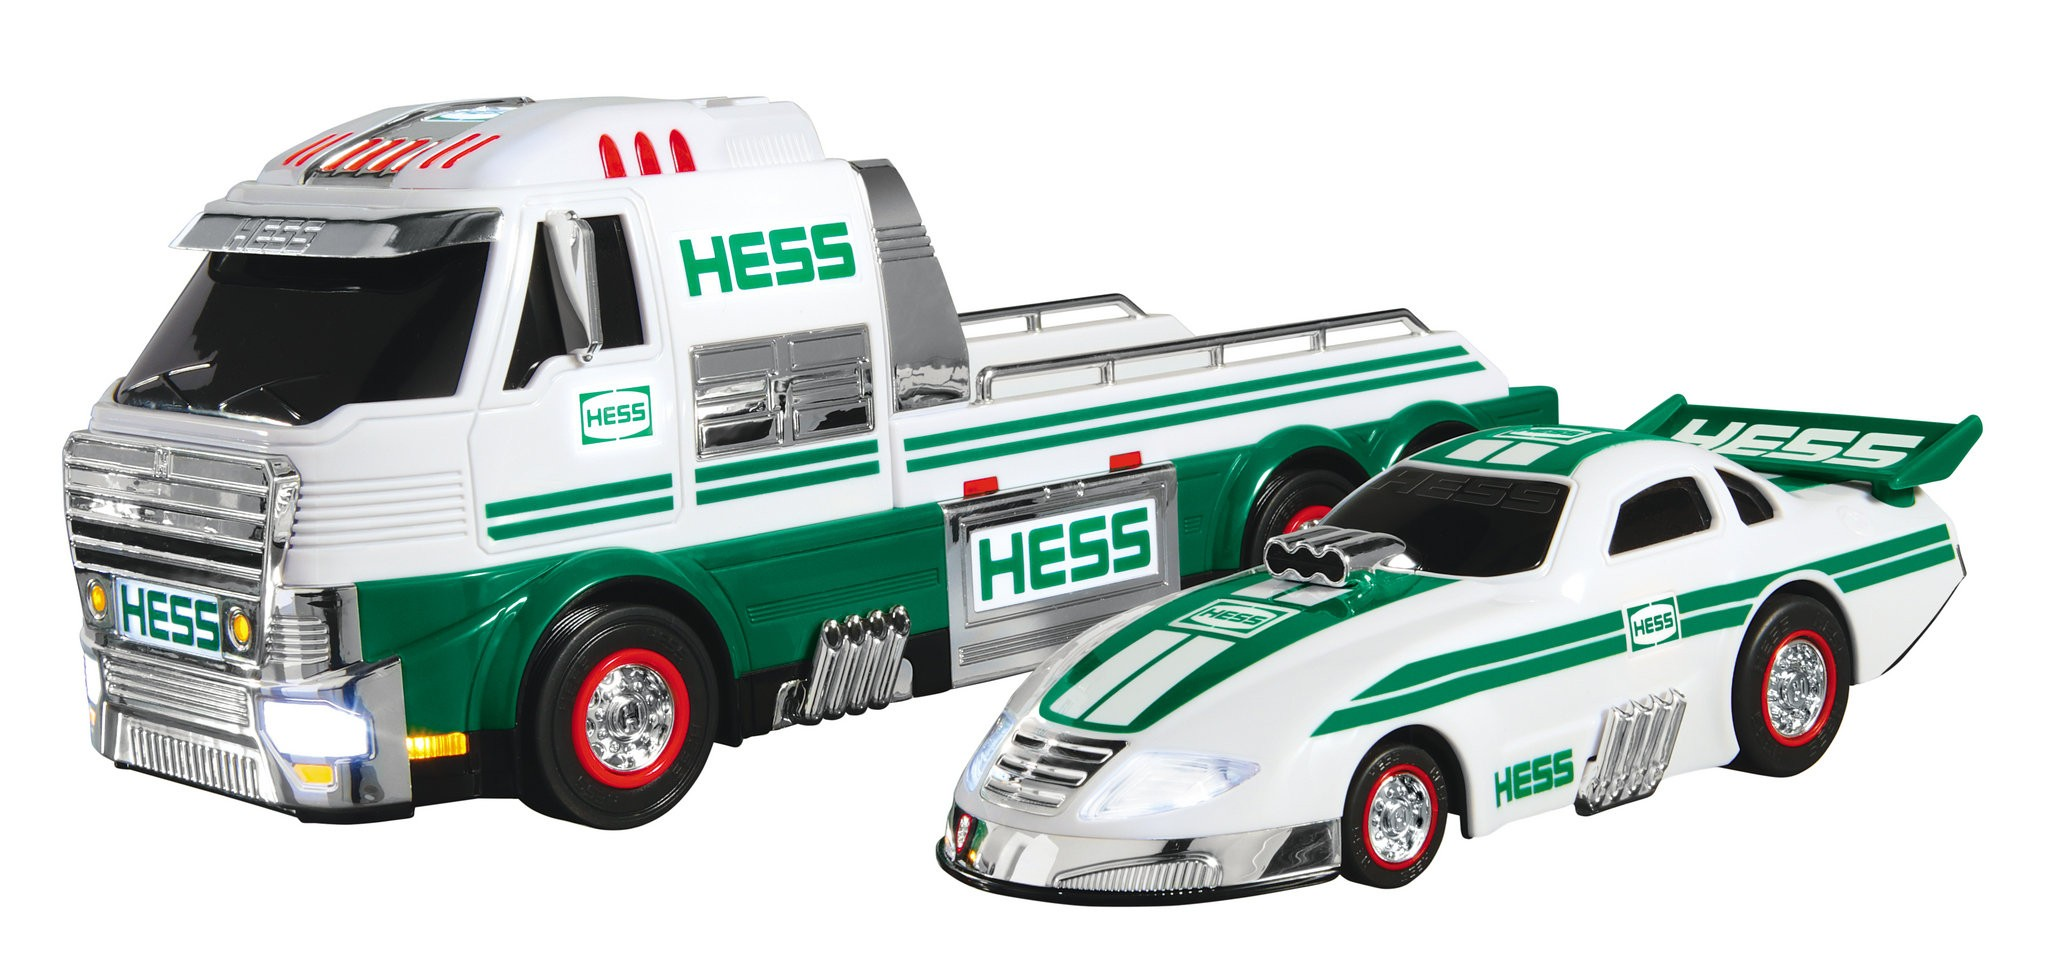 2016 Hess Toy Truck and Dragster NEW SOLD OUT at HESS DIRECT SEALED BOX